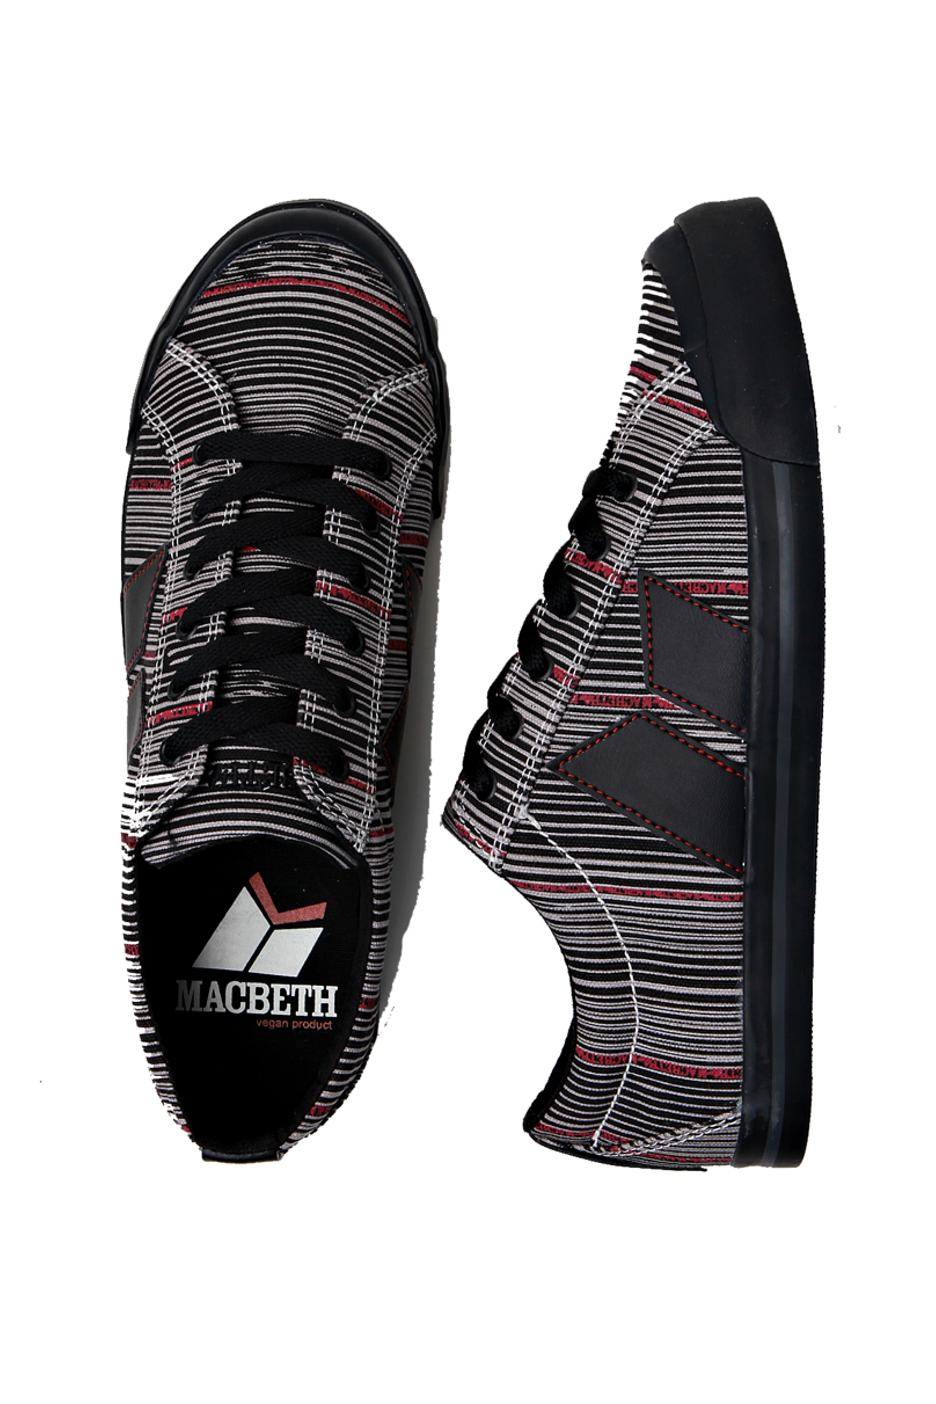 Macbeth - Eliot Premium Black Stripes - Girl Shoes ...